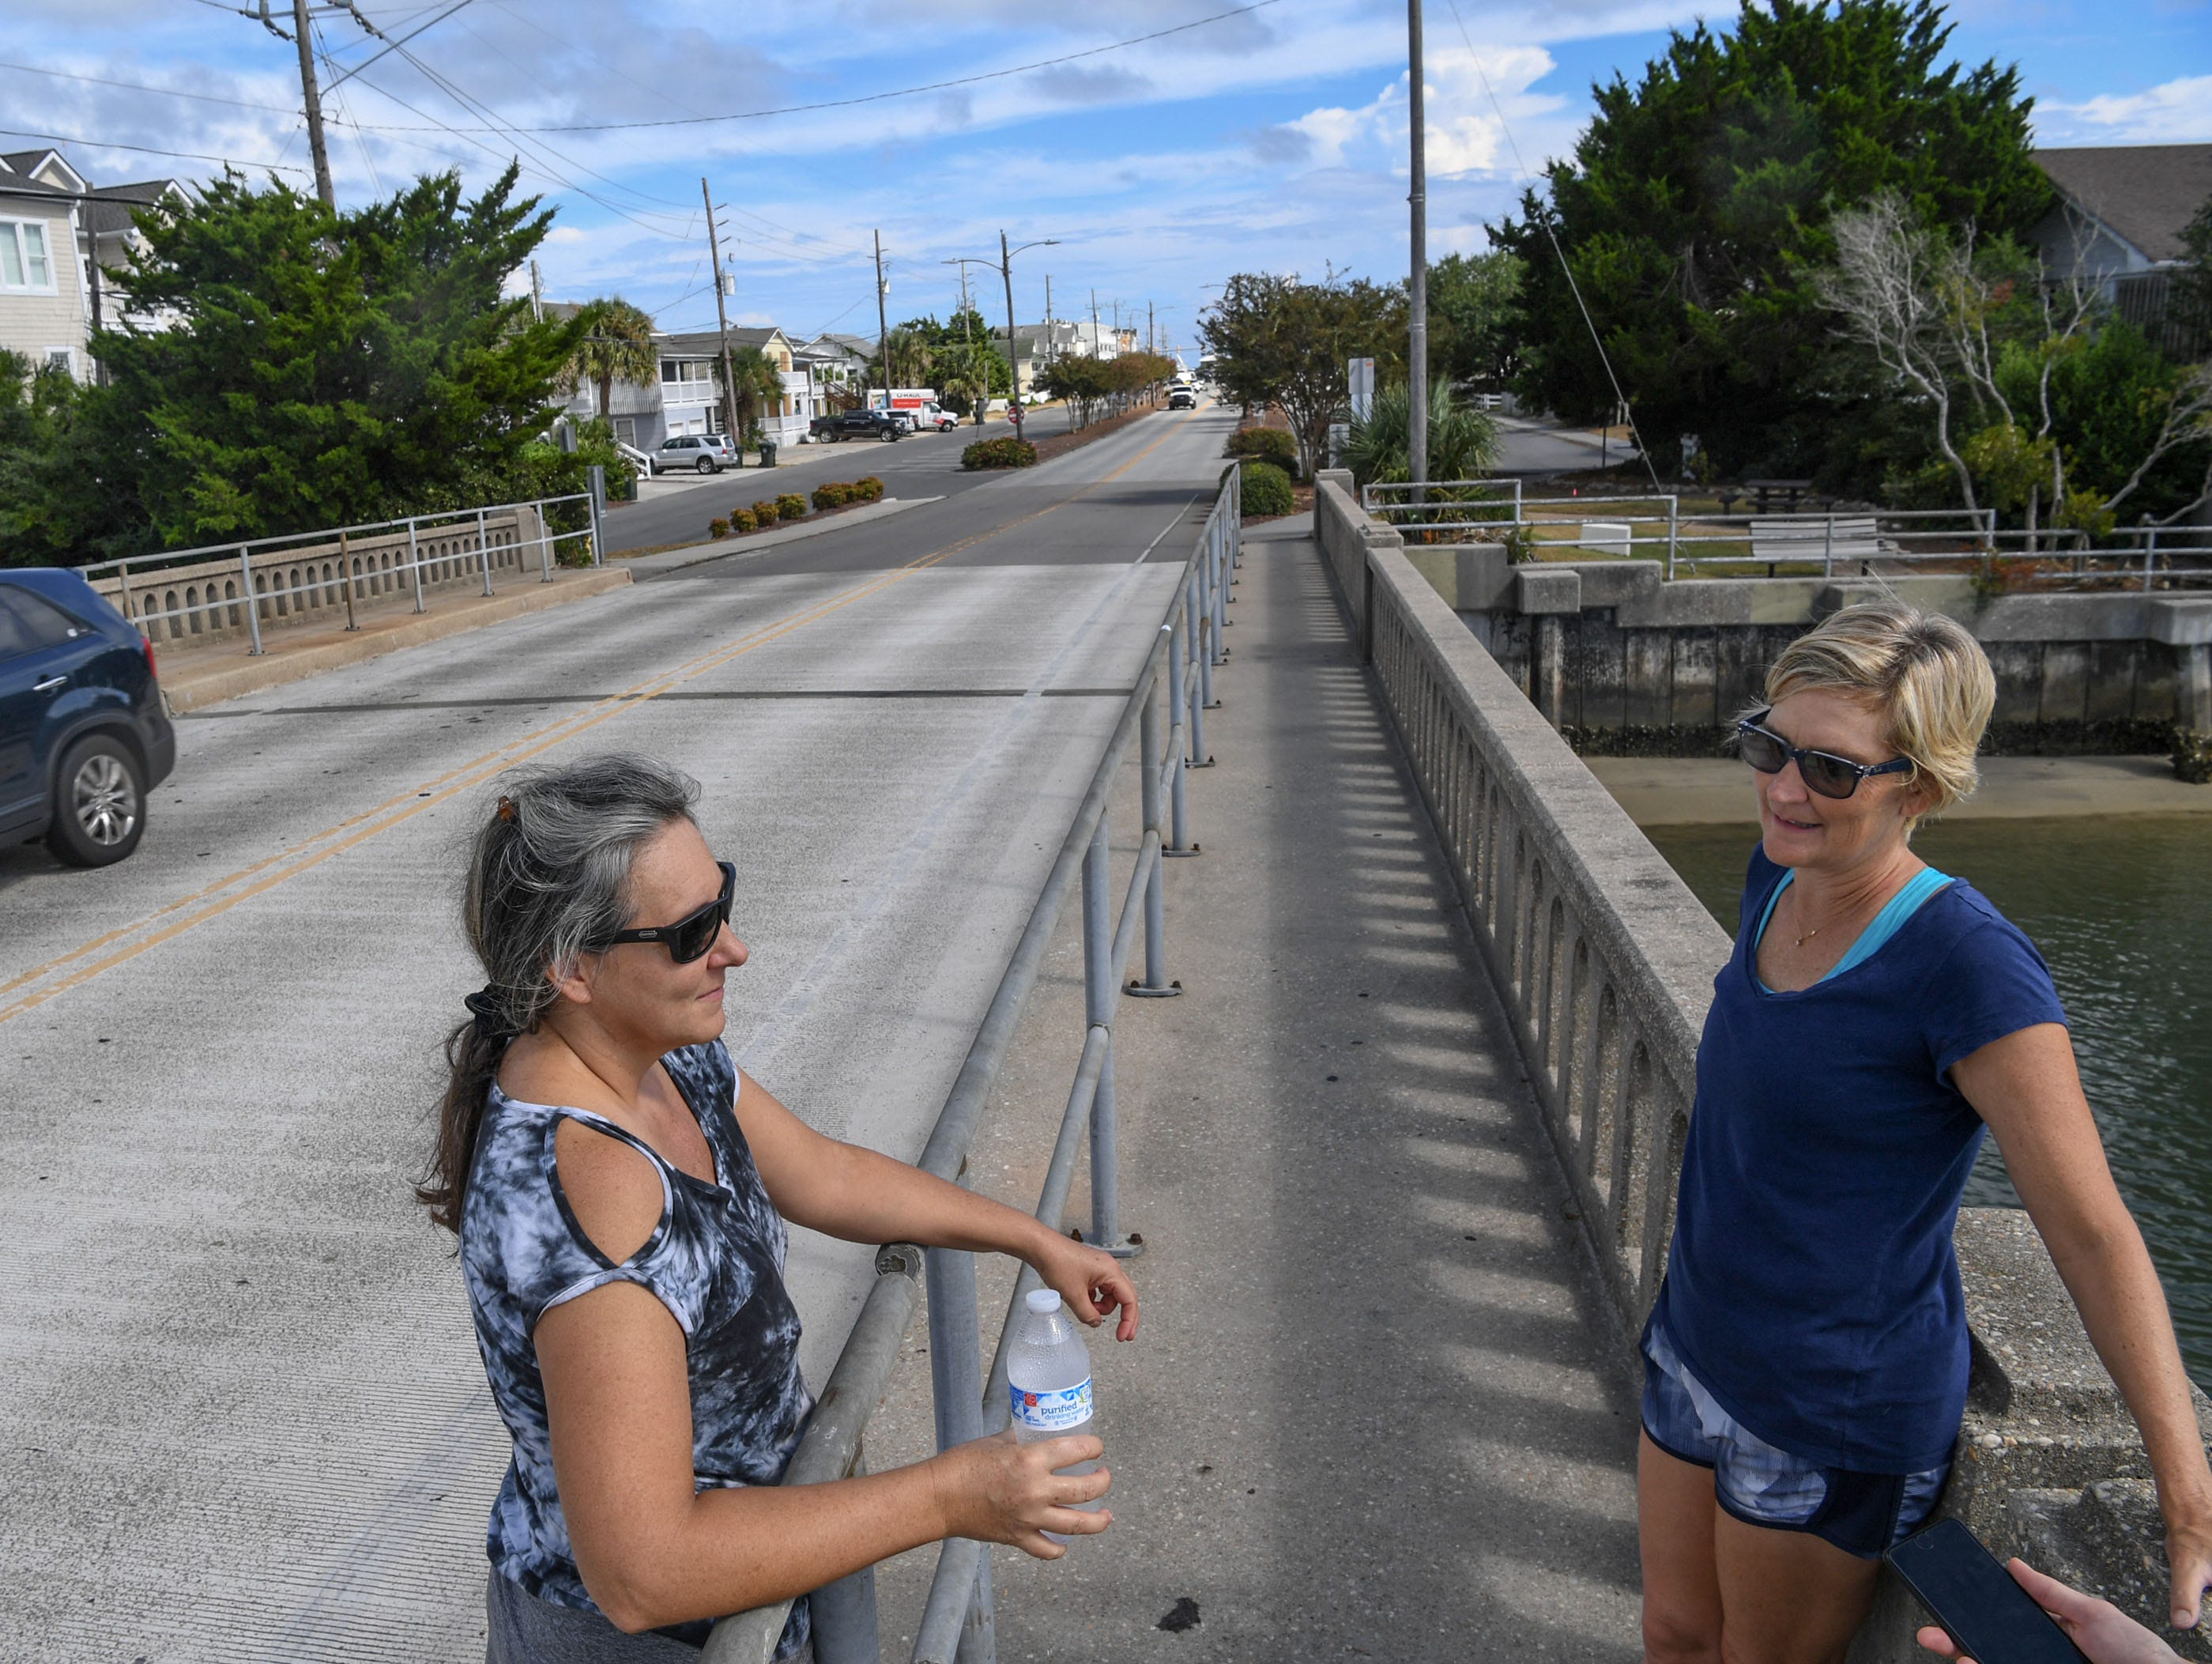 Lori Rosbrugh, left, and Melinda Chipley of Wilmington said they would evacuate Wednesday, going for a walk around Wrightville Beach on Tuesday, September 11, 2018. Hurricane Florence is expected to arrive in Wilmington, North Carolina late Thursday night through Friday morning. (Ken Ruinard / Greenville News / Gannett USA Today Network / 2018 )